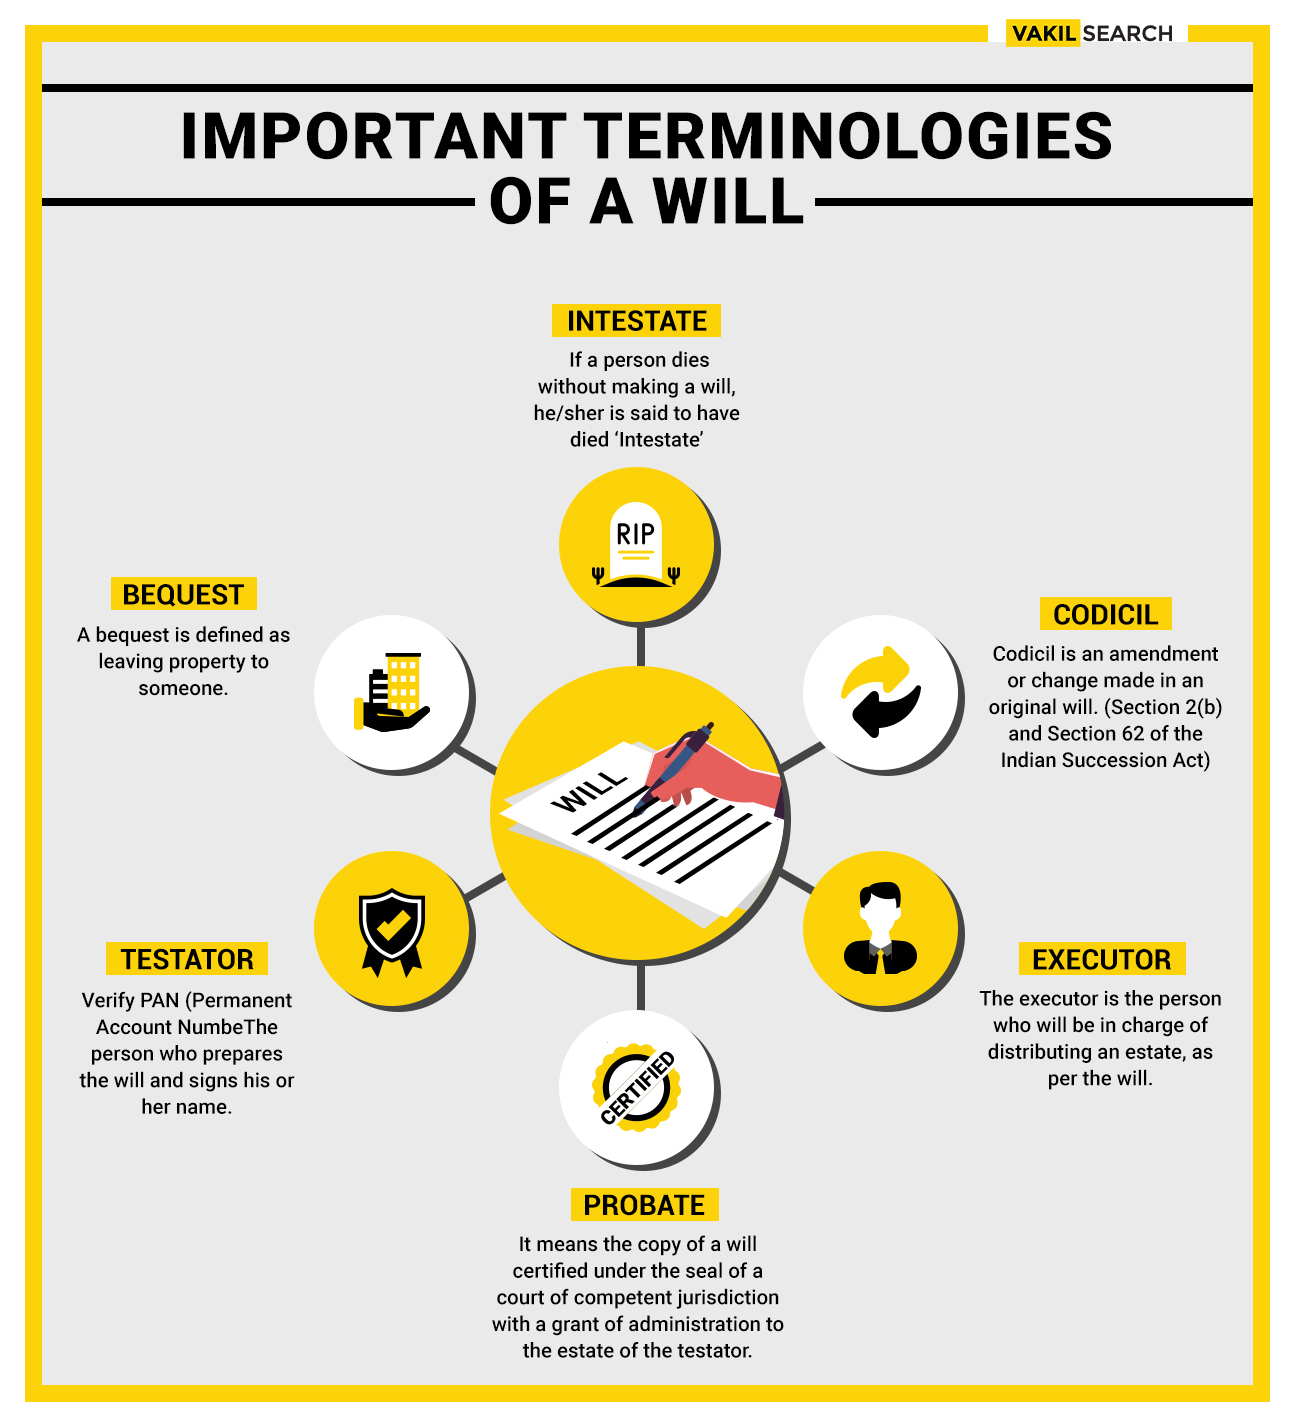 Important Terminologies of a Will